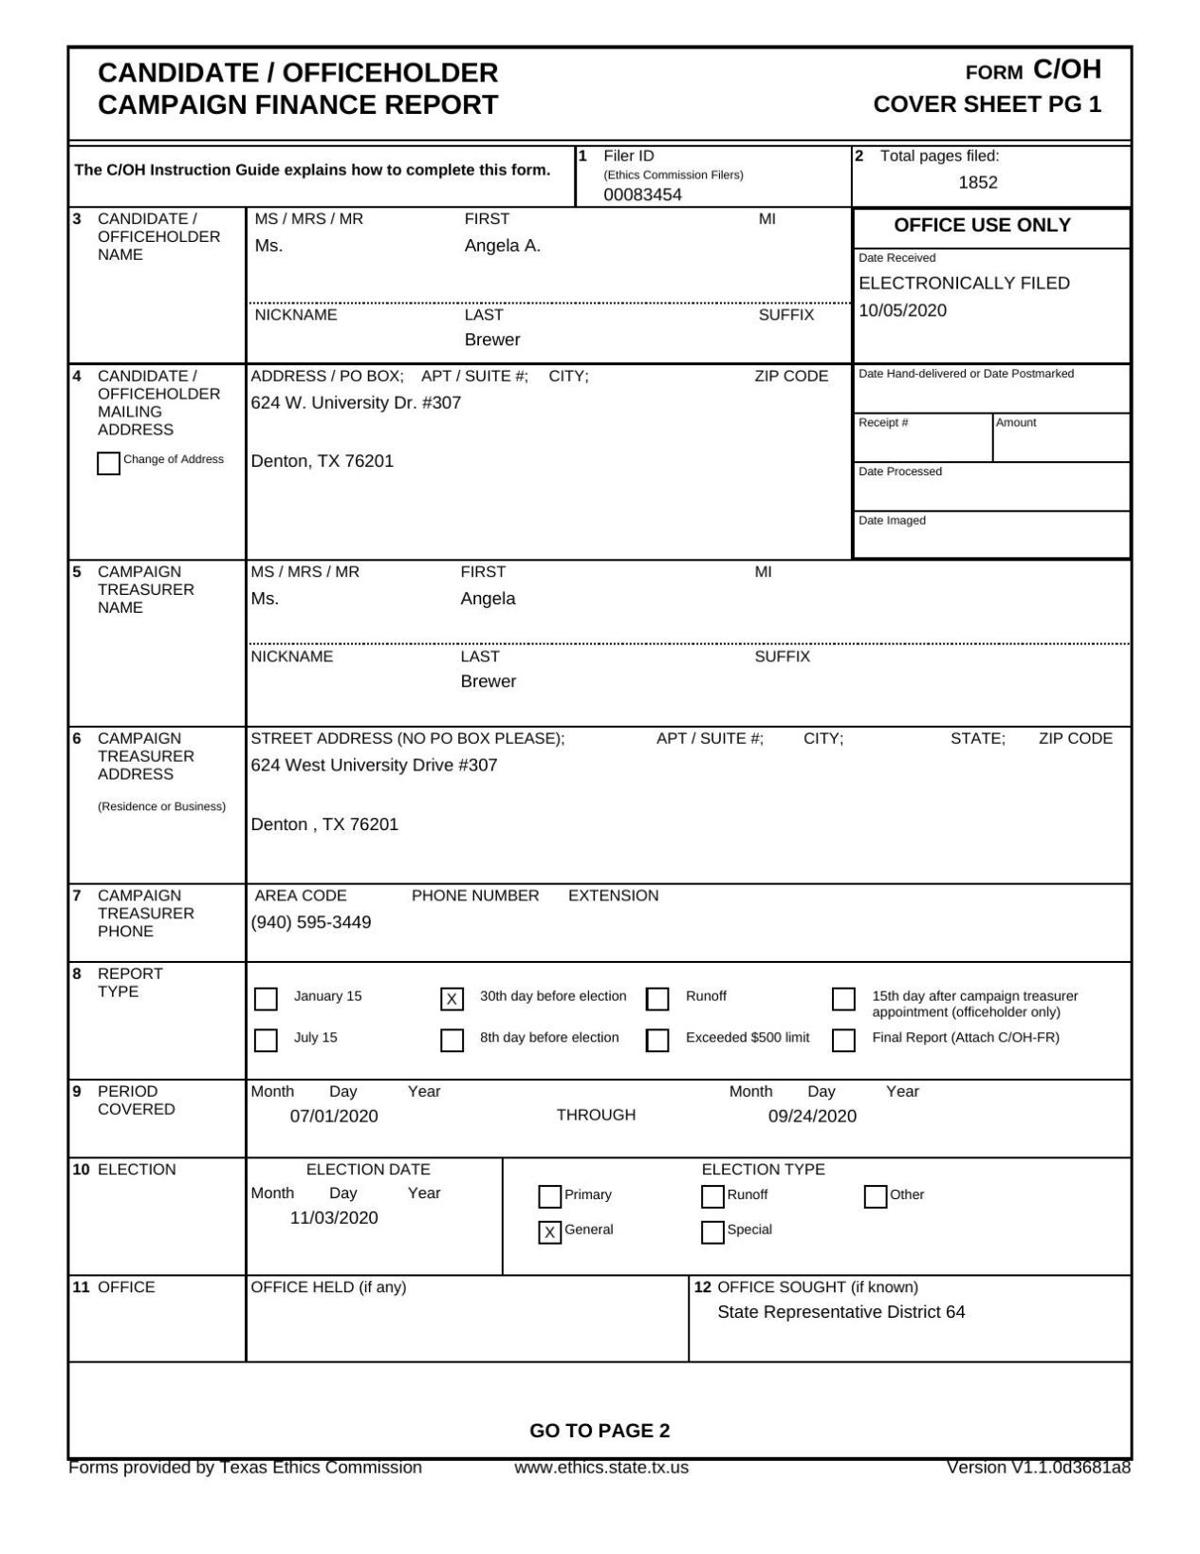 Angela Brewer Campaign Finance Report